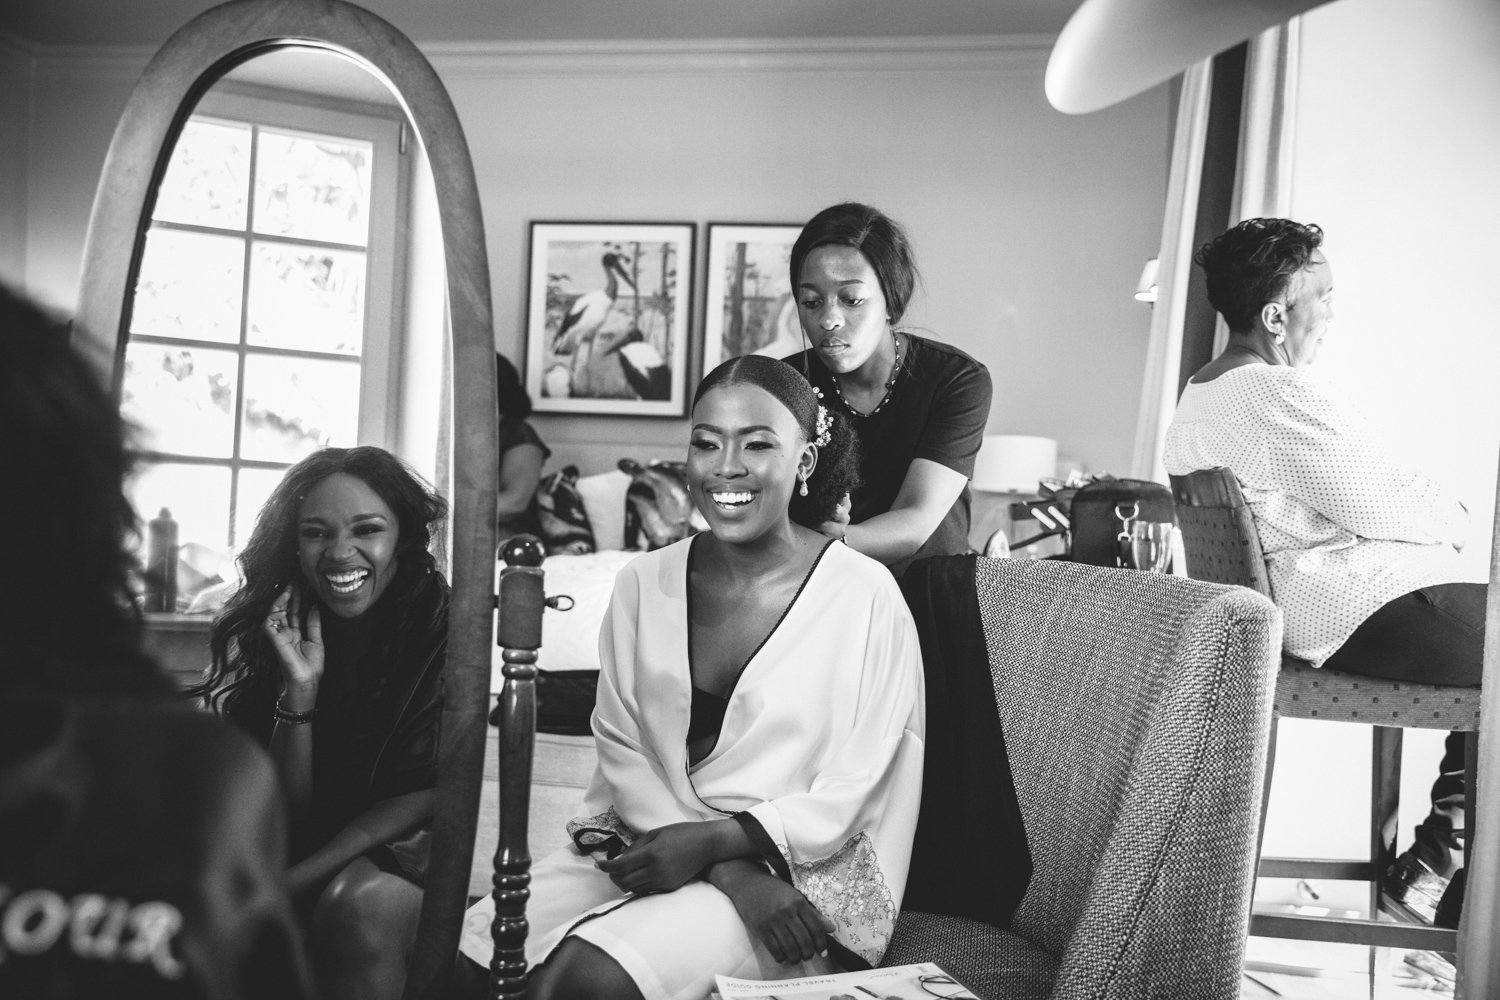 a bride getting ready for her wedding, laughing with her bridesmaid.